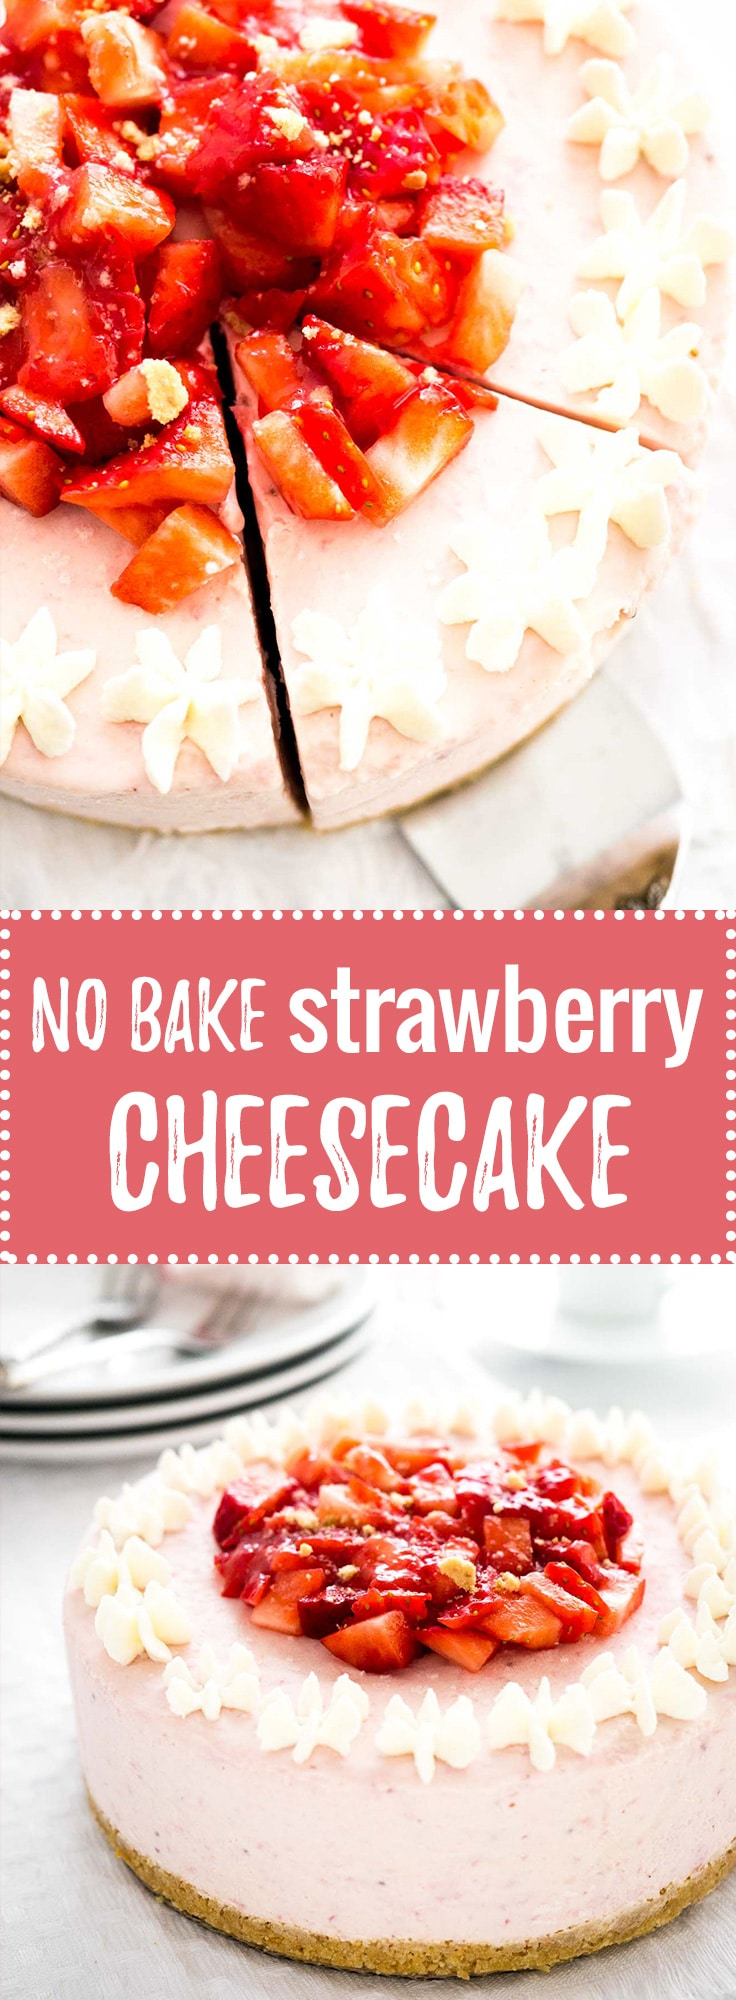 No Bake Strawberry Cheesecake - this fluffy mousse cake is made with fresh strawberries! A perfect cake for special occasions. Can be served frozen!